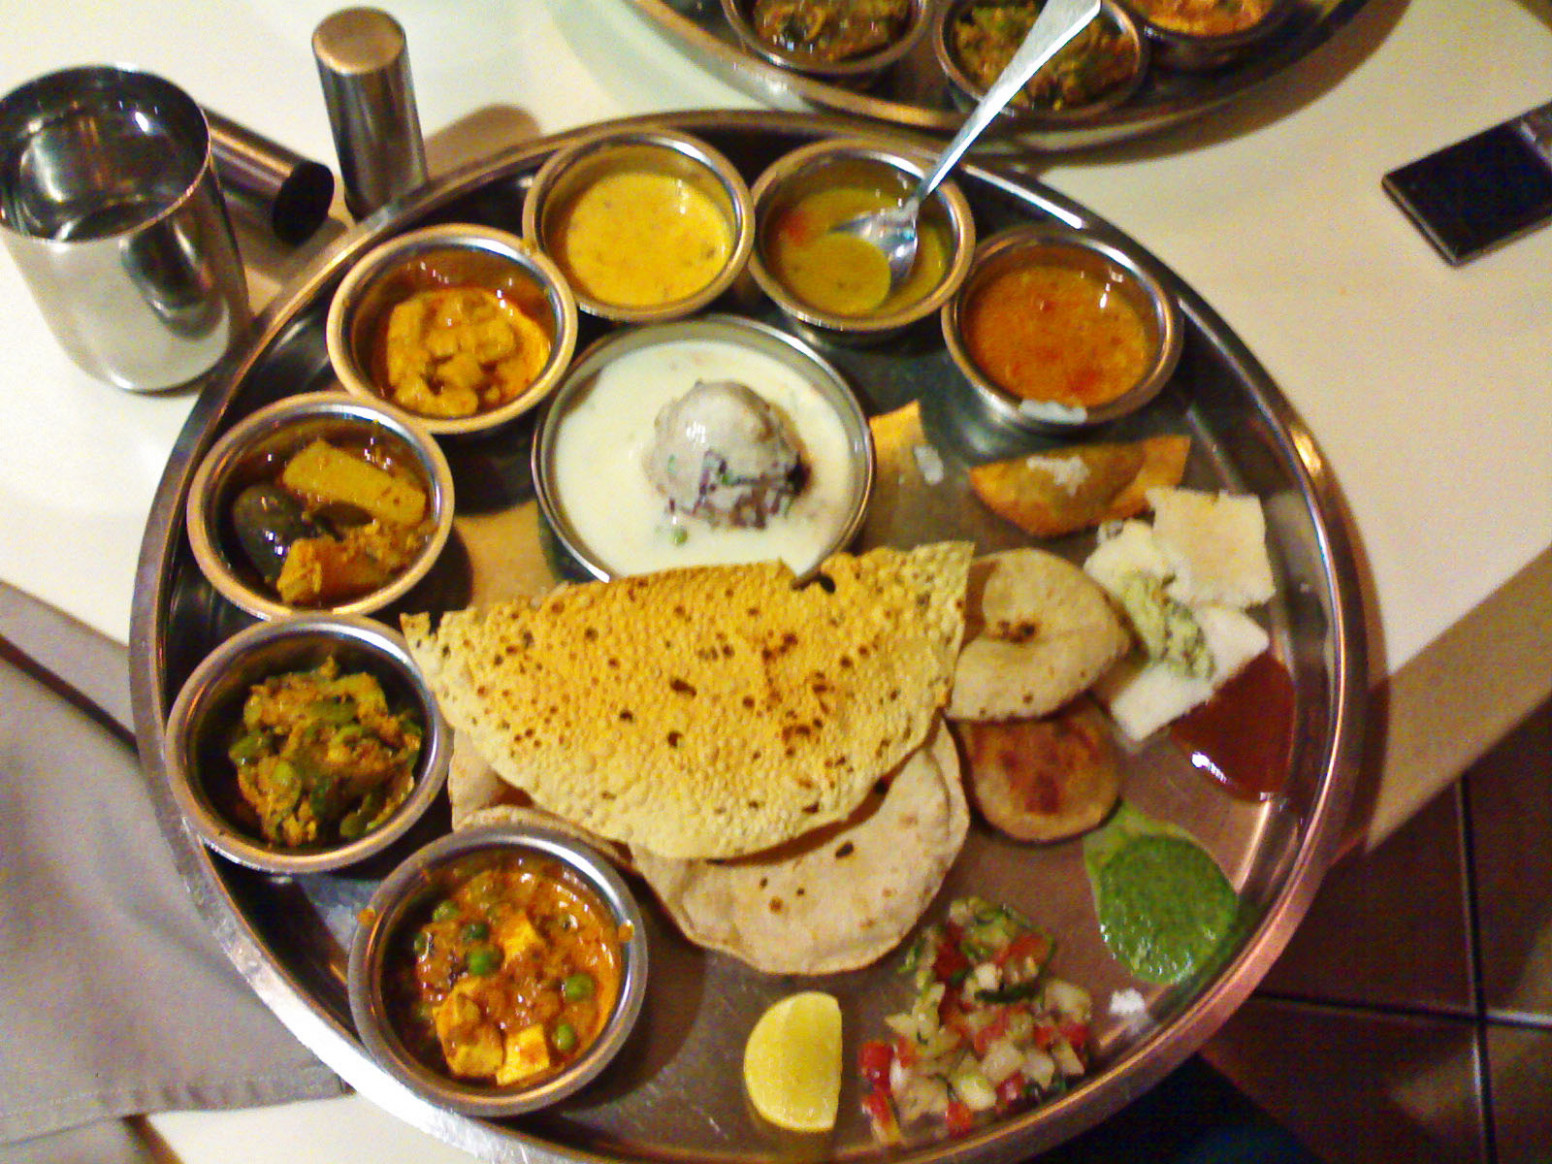 Stock Pictures: Indian Thali - Typical Indian Vegetarian Meal - Indian Recipes Dinner Vegetarian